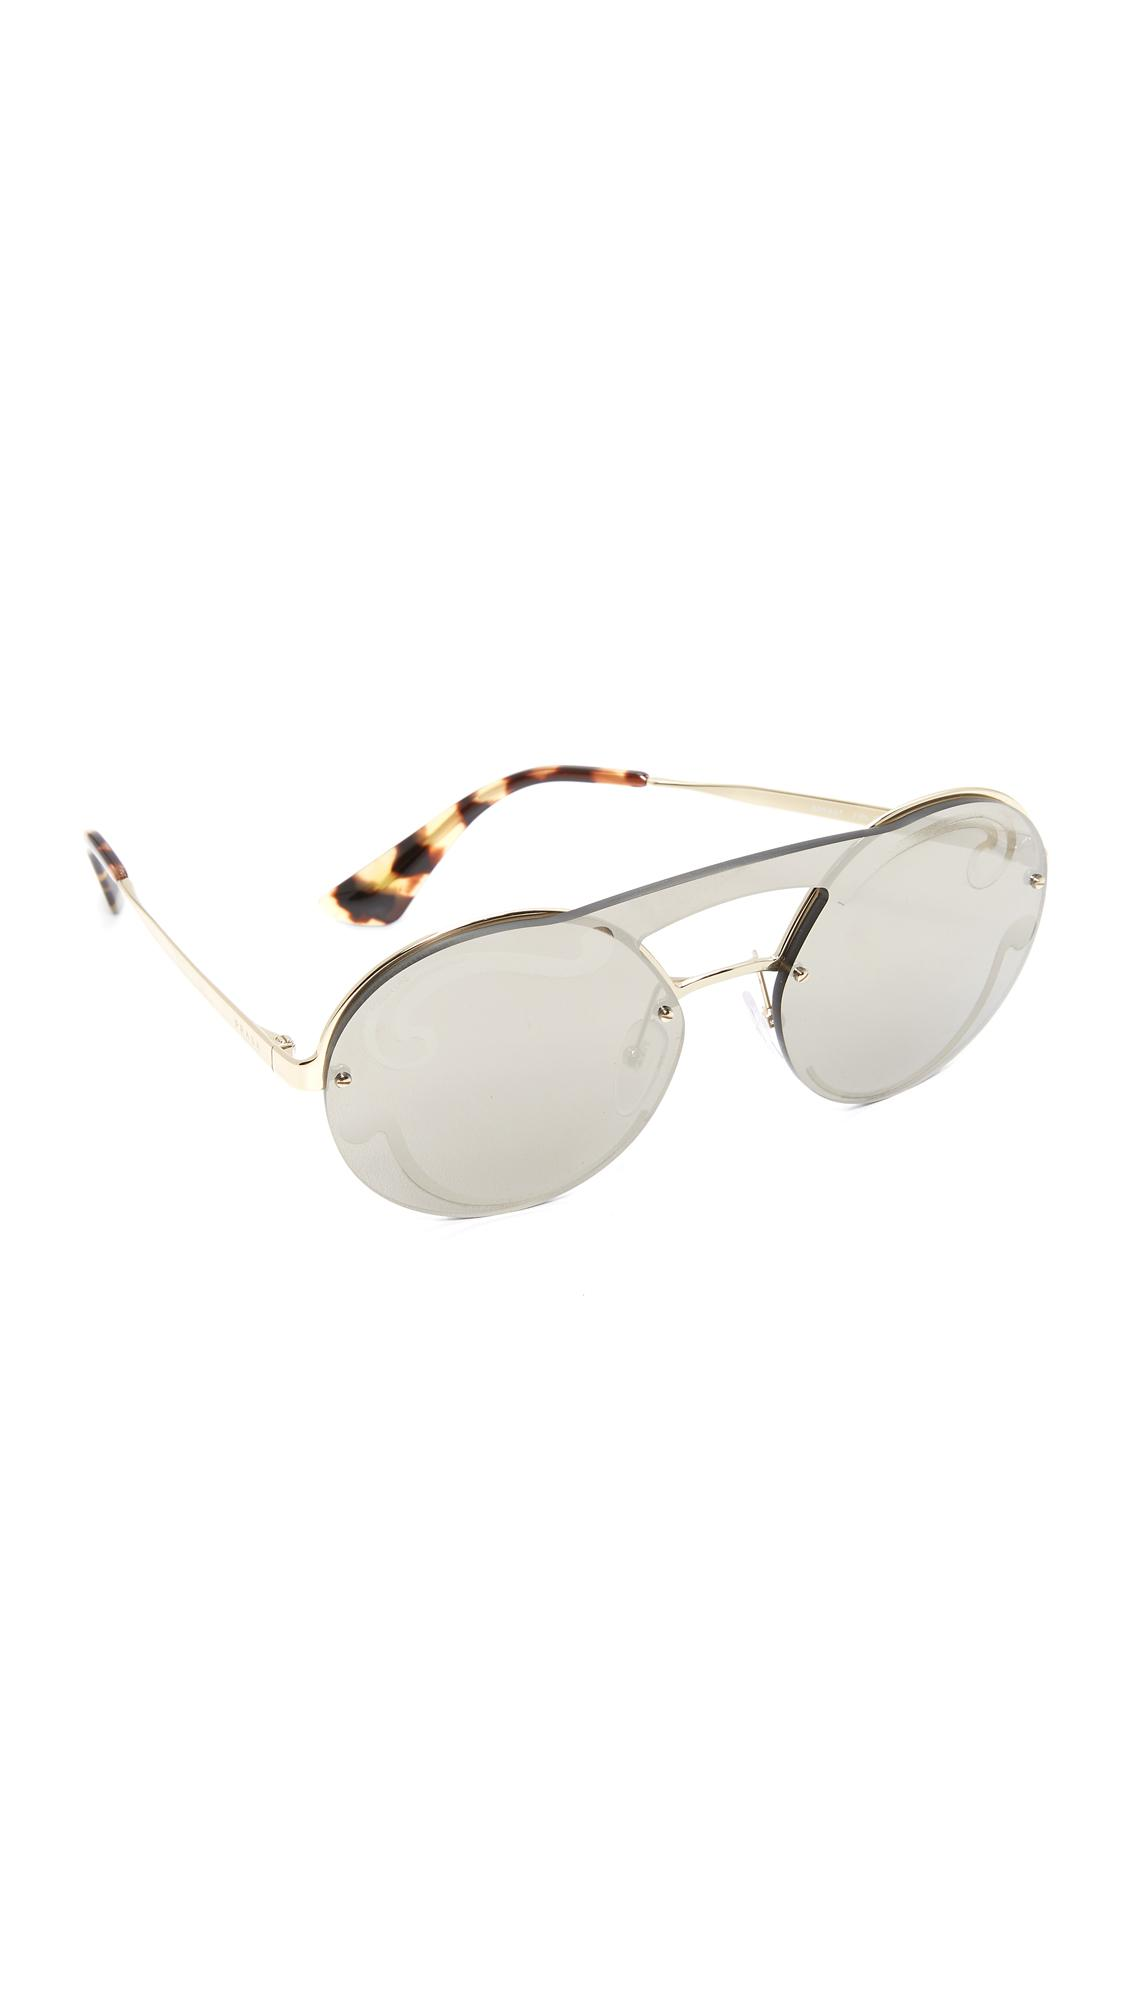 cab3870c191 ... france lyst prada cinema round brow bar sunglasses in metallic d73c2  3fe7b